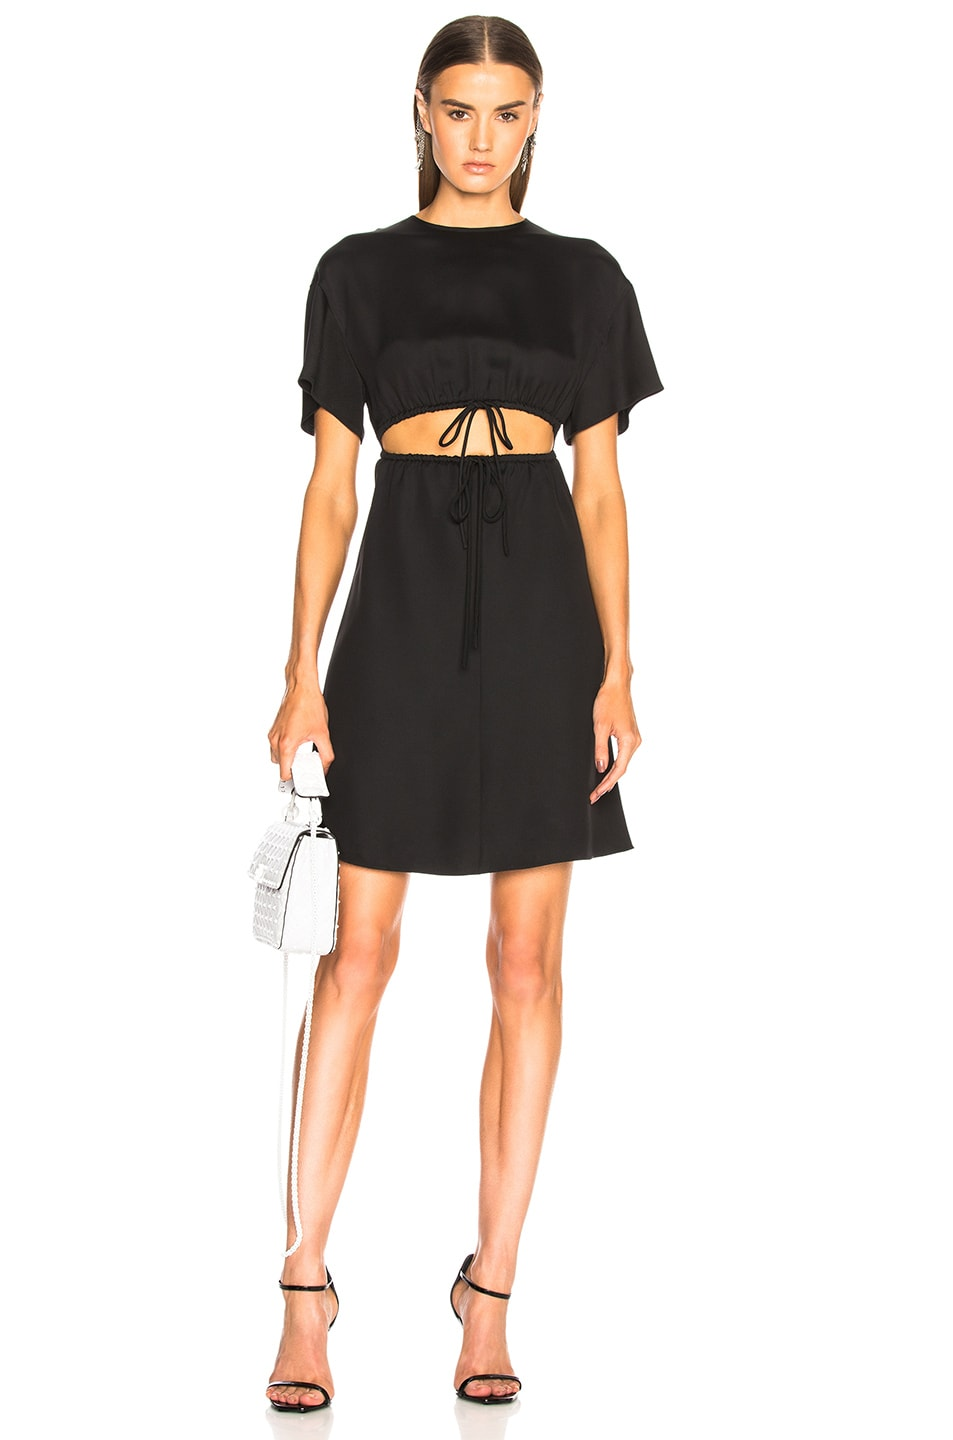 Valentino Cutout Mini Dress in Black